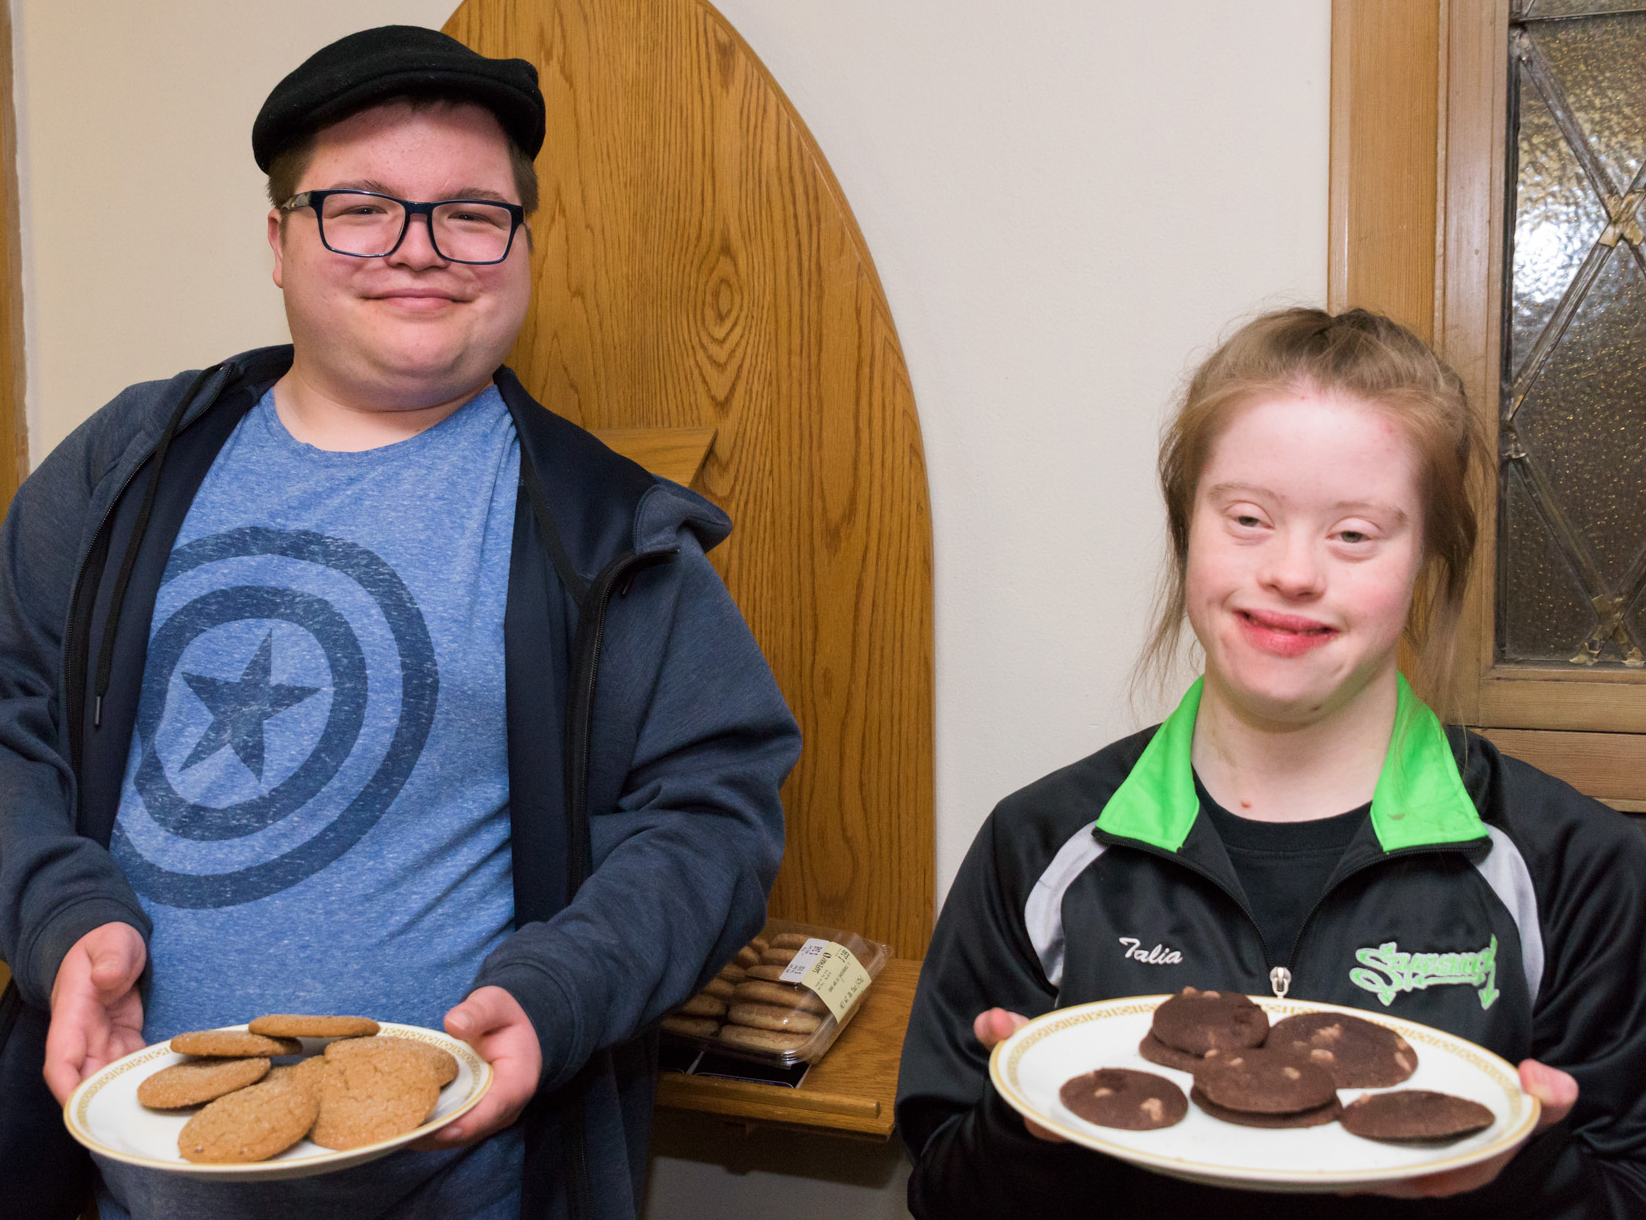 Two people hold plates of cookies and smile at the camera.